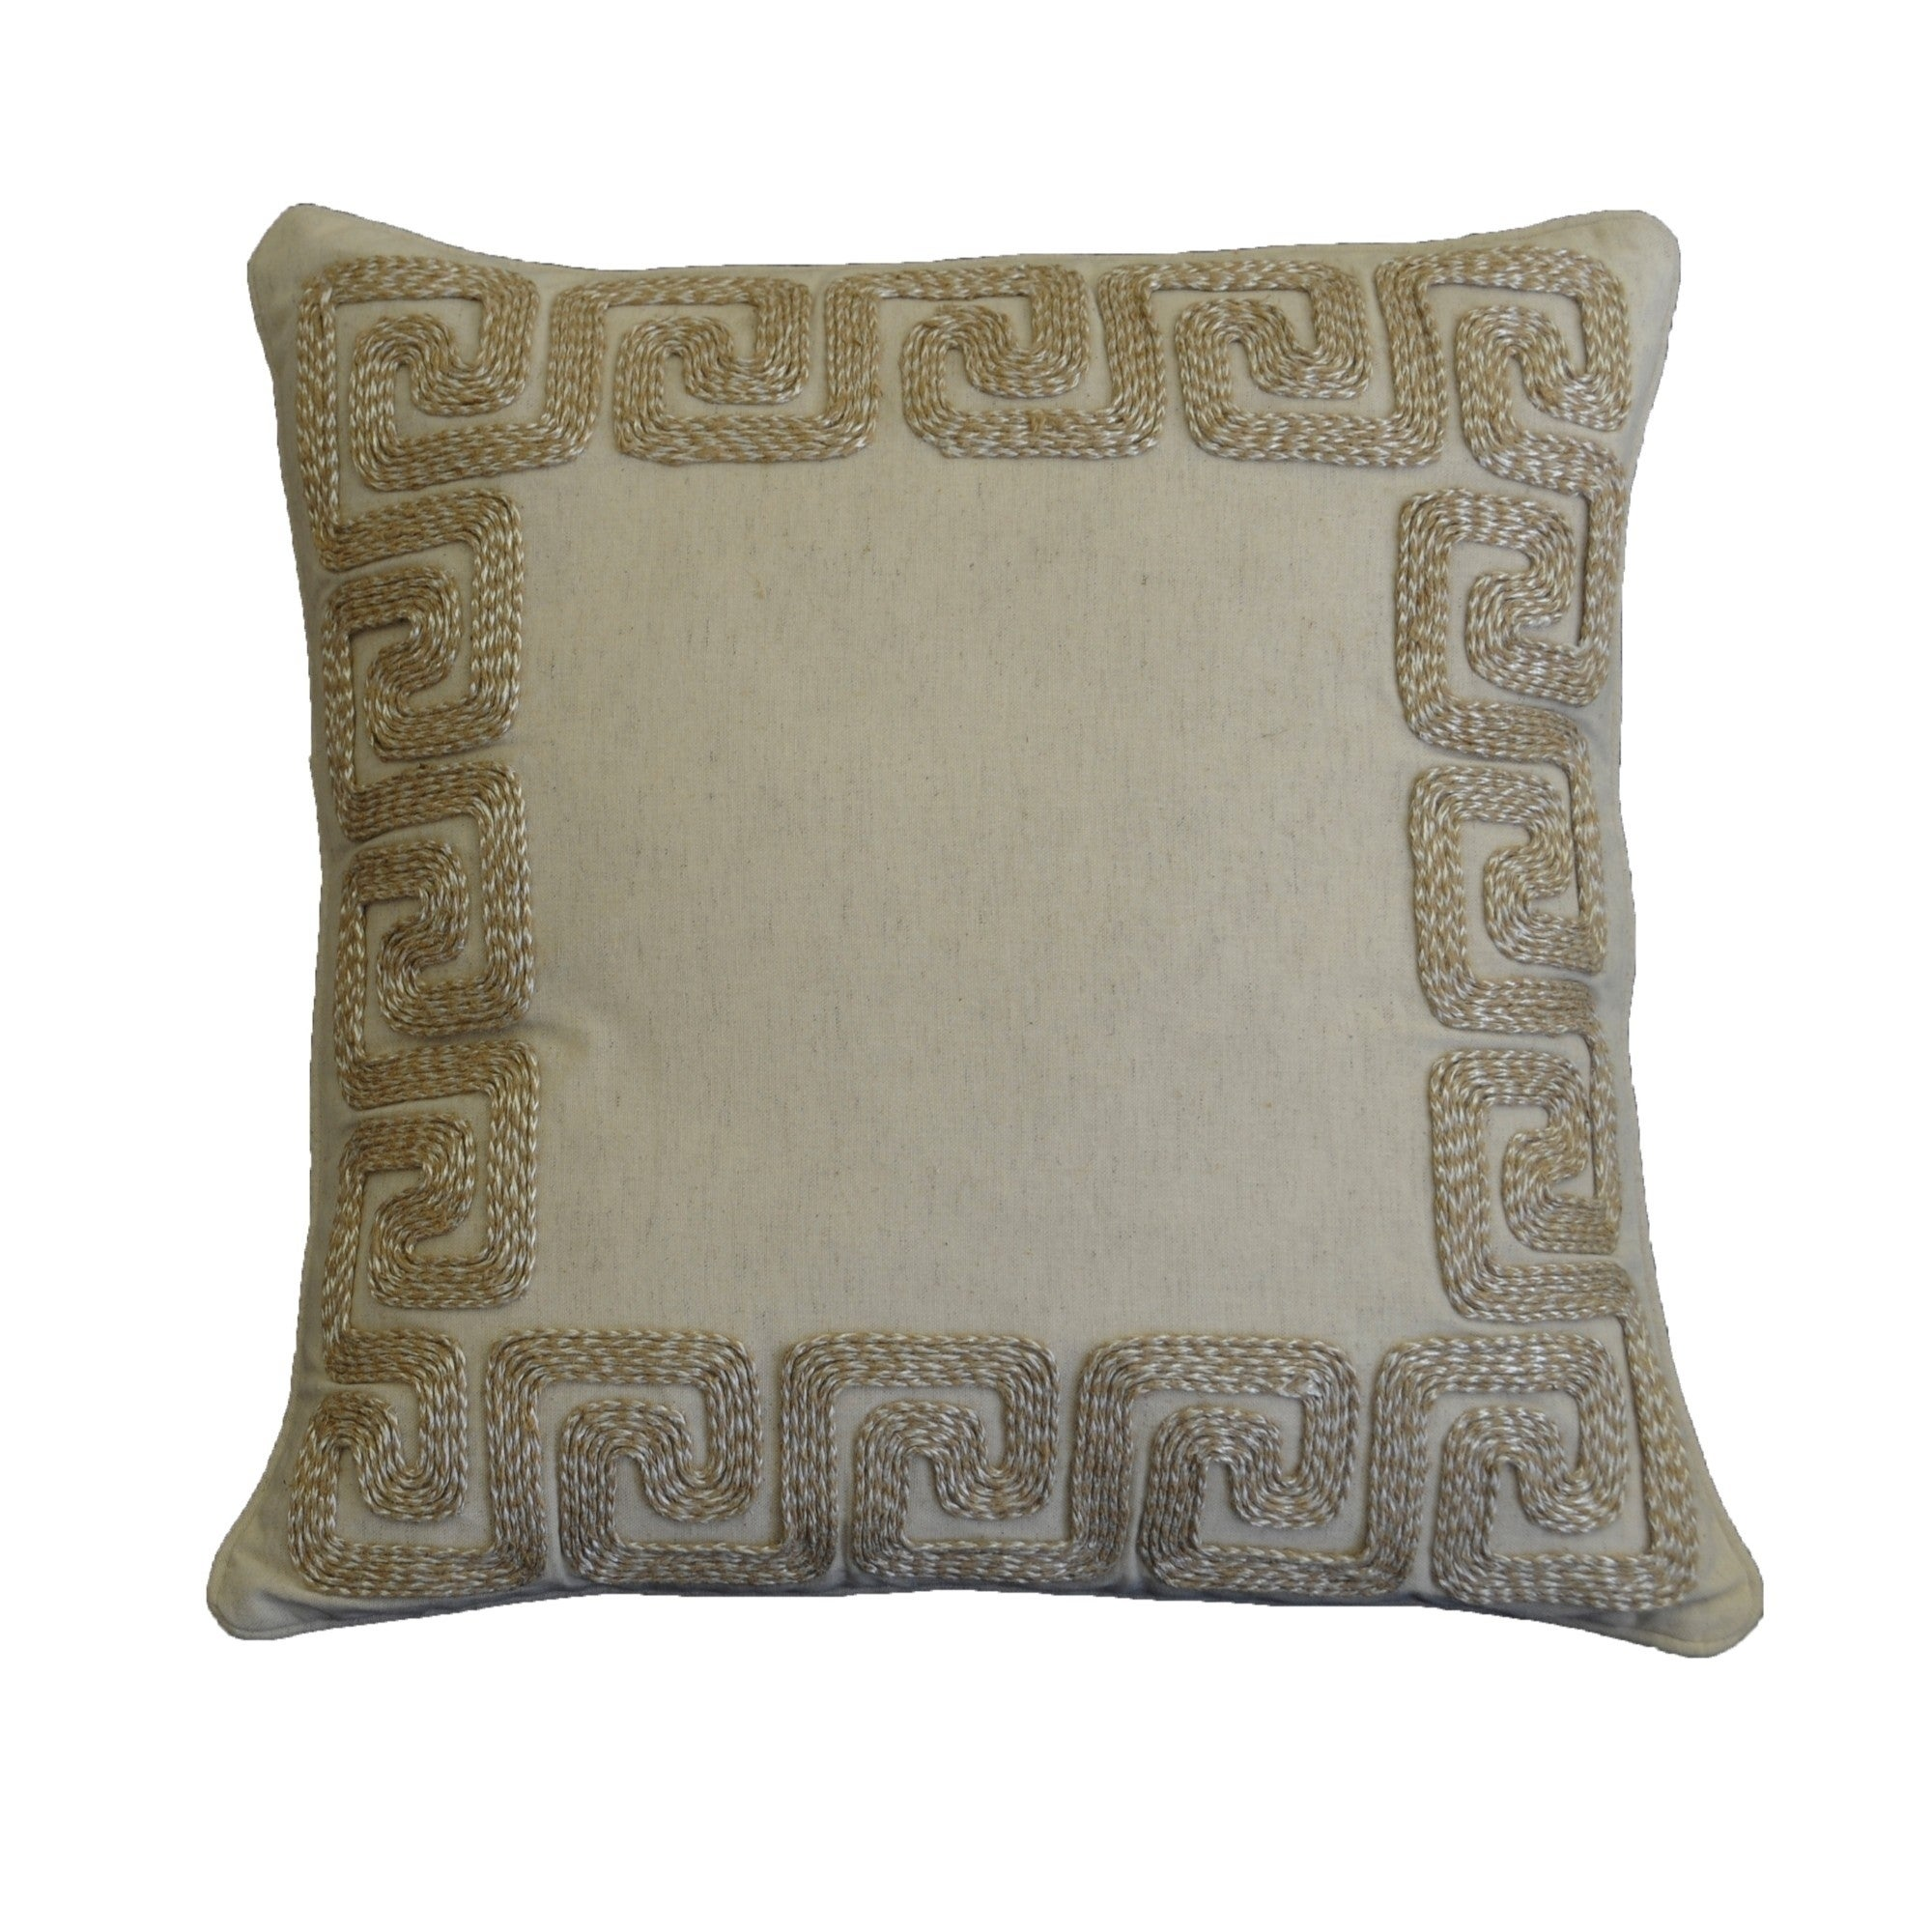 Am Home Greek Key Border Pillow Feather Insert Free Shipping On Orders Over 45 19886898